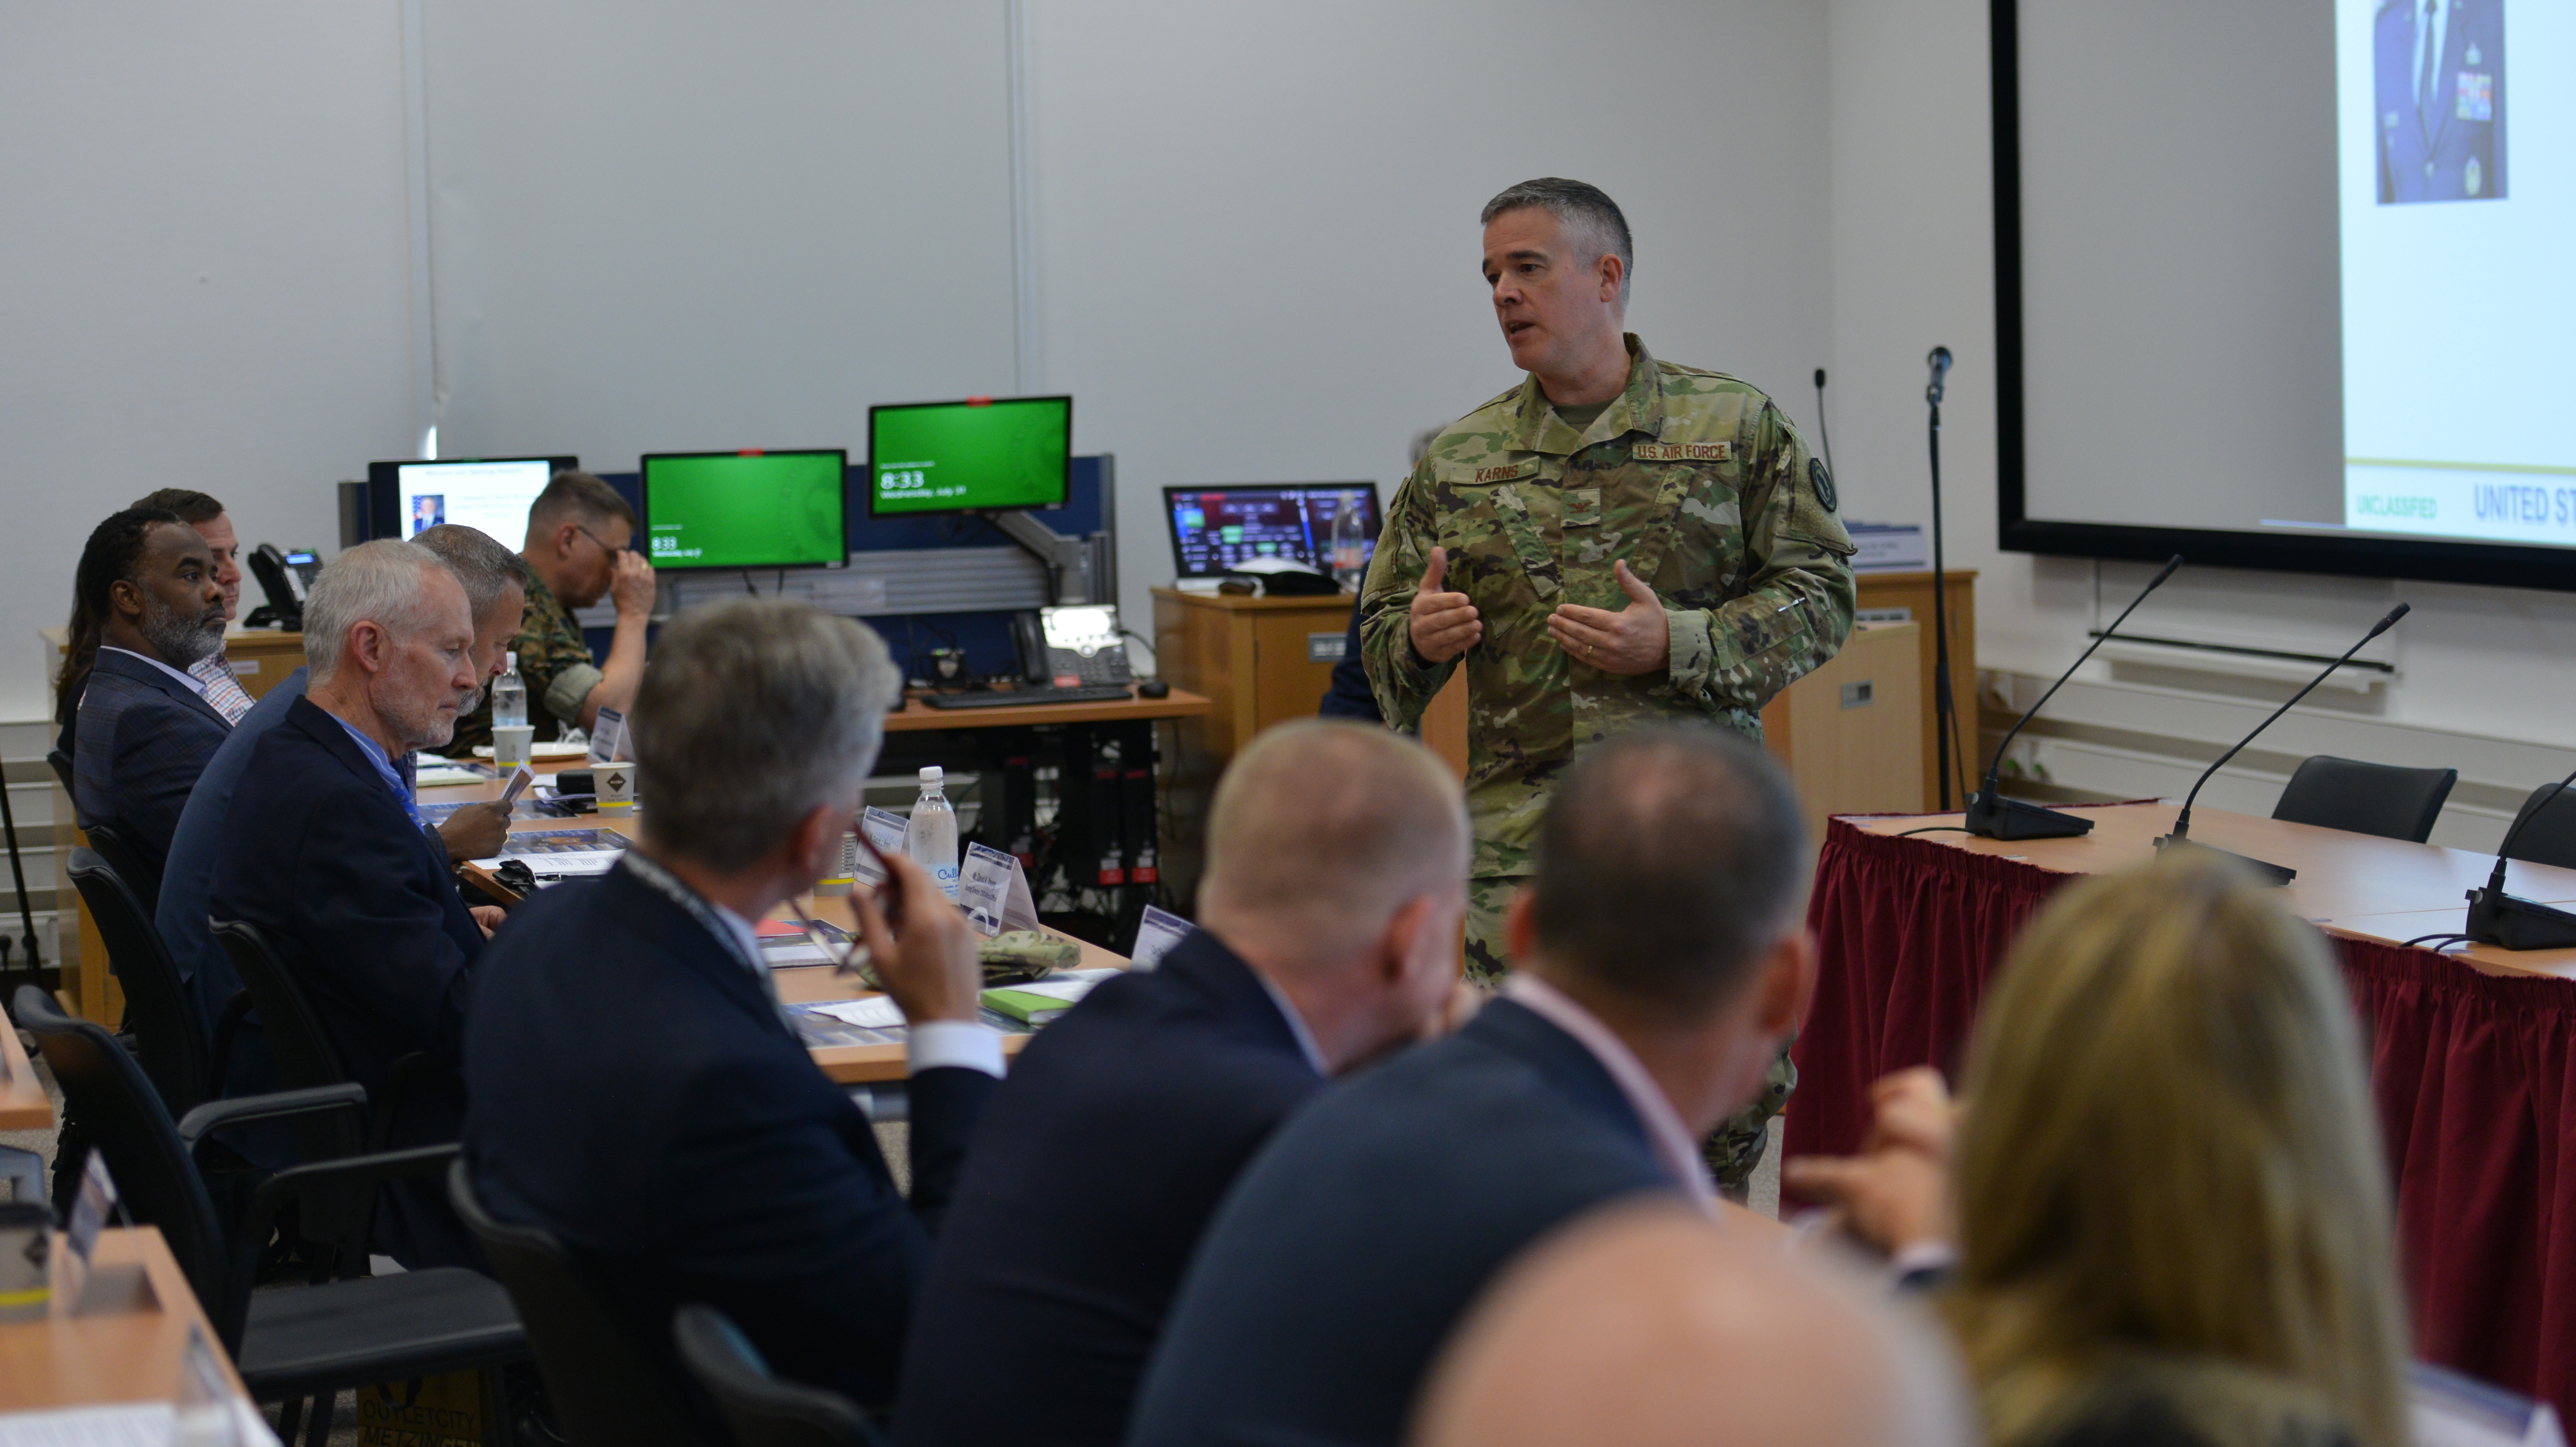 STUTTGART, Germany – Air Force Col. Christopher Karns, director, Public Affairs and Communication Synchronization, U.S. Africa Command, addresses attendees of the AFRICOM Public Affairs Communicators Symposium, July 31, 2019 in Stuttgart, Germany. 